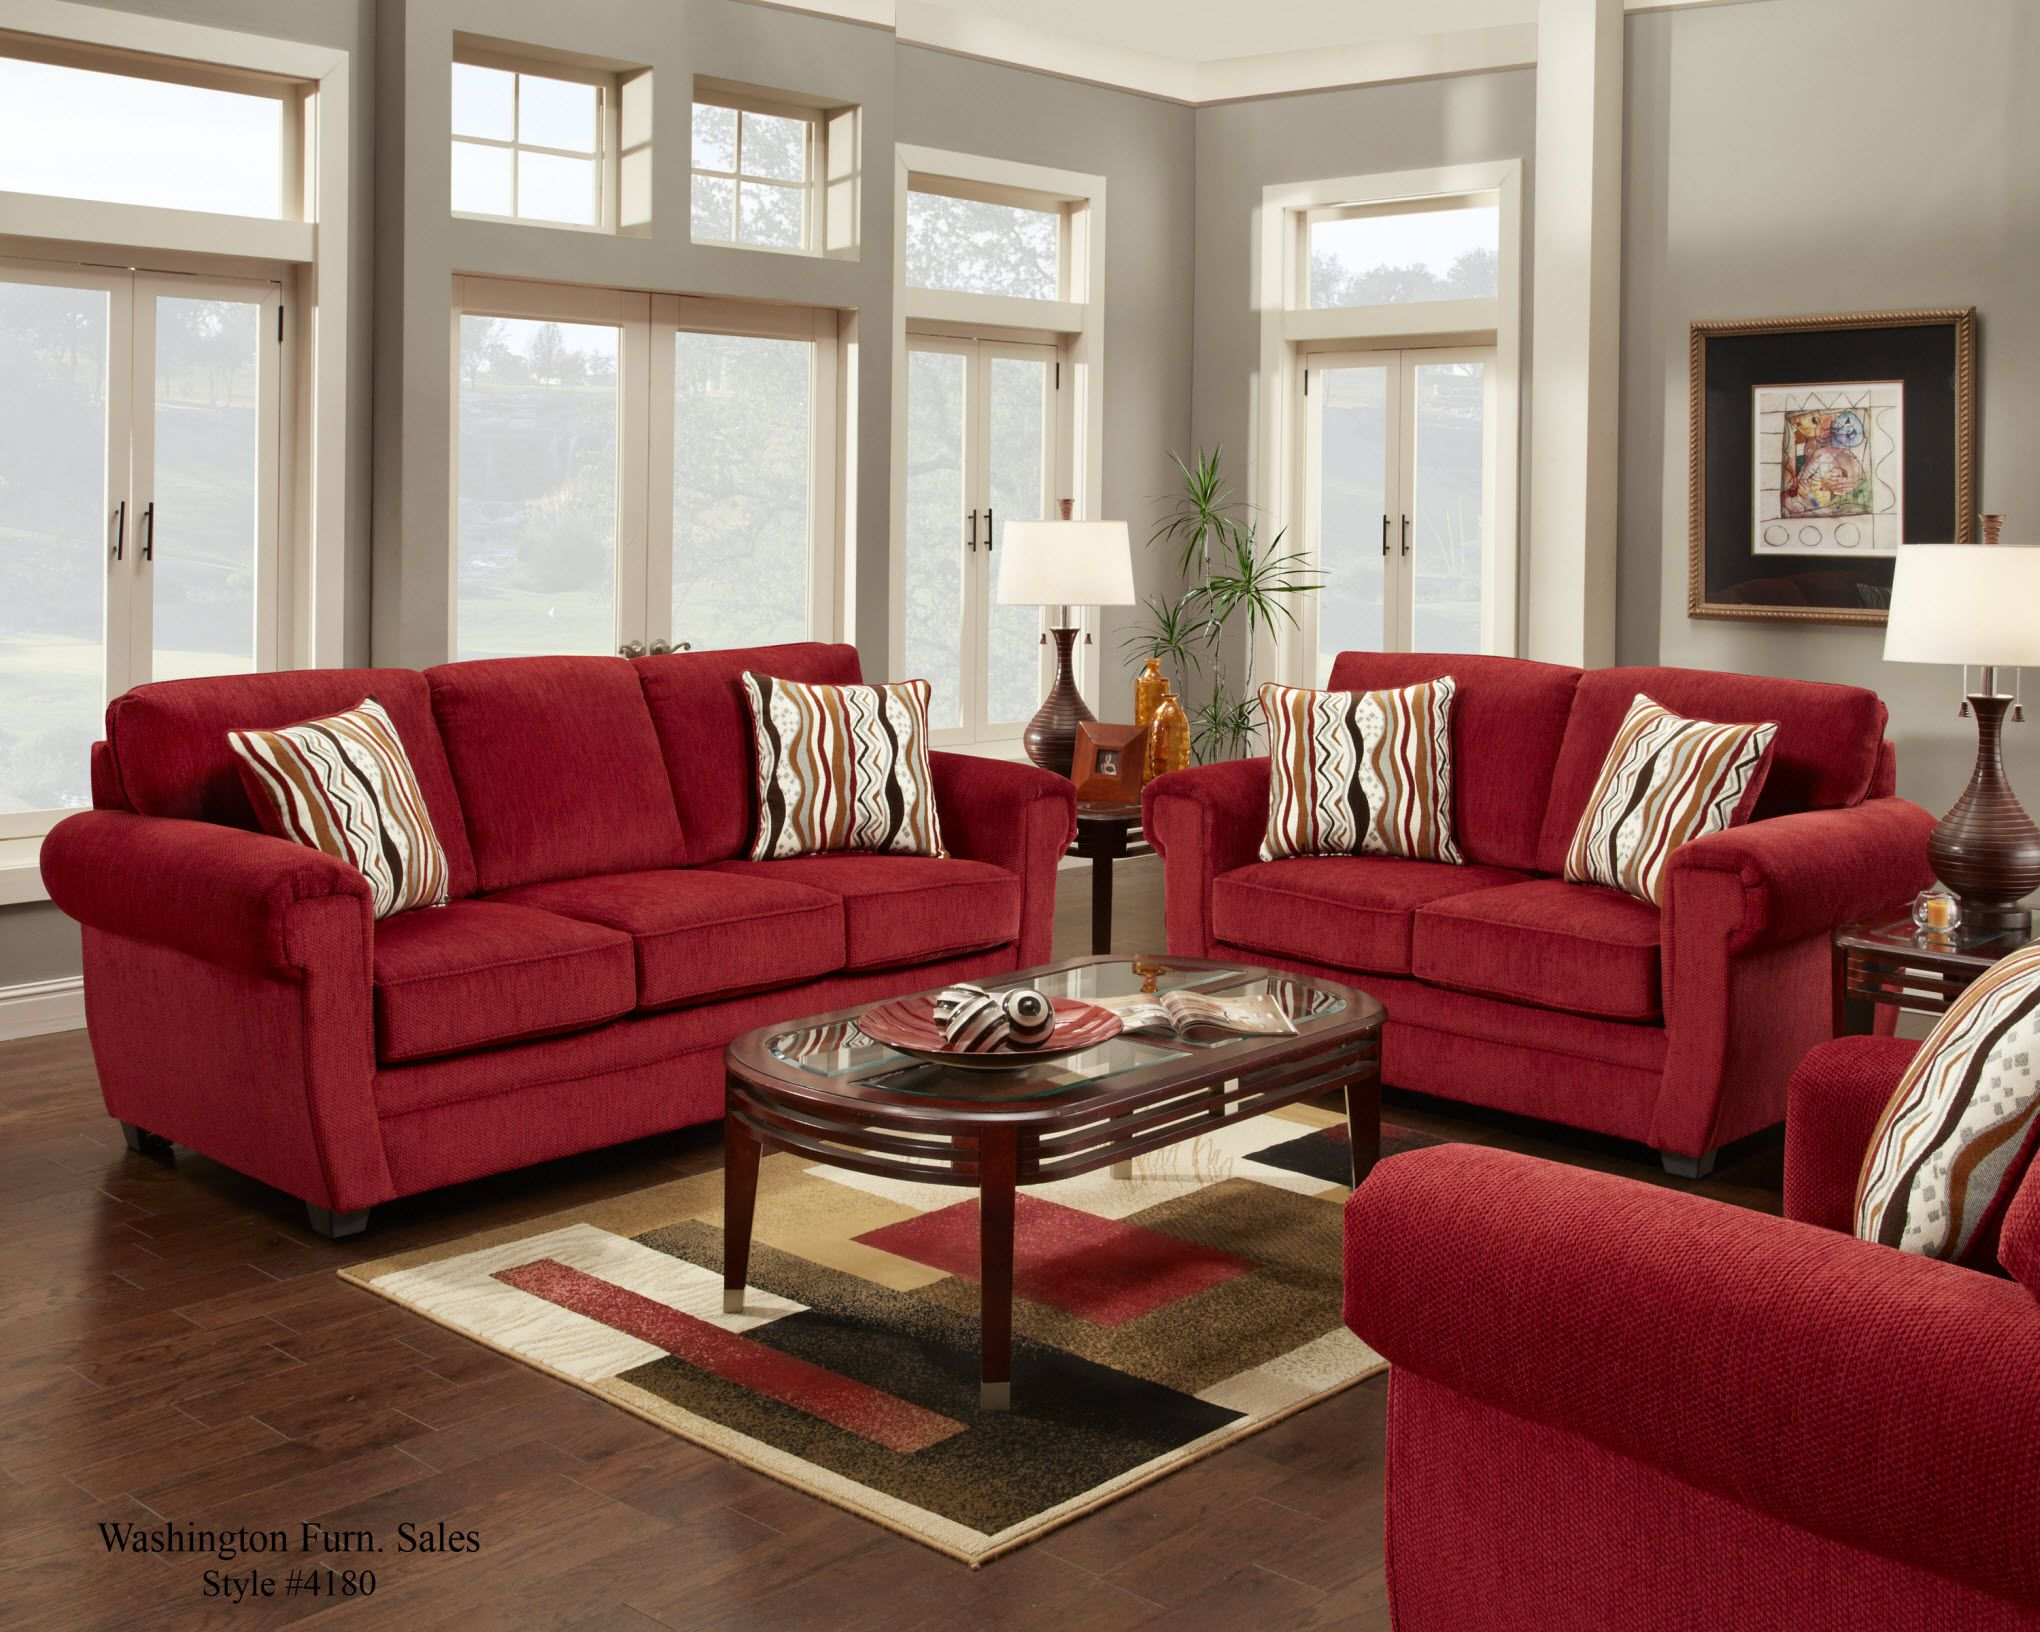 4180 washington samson red sofa and loveseat www. Black Bedroom Furniture Sets. Home Design Ideas